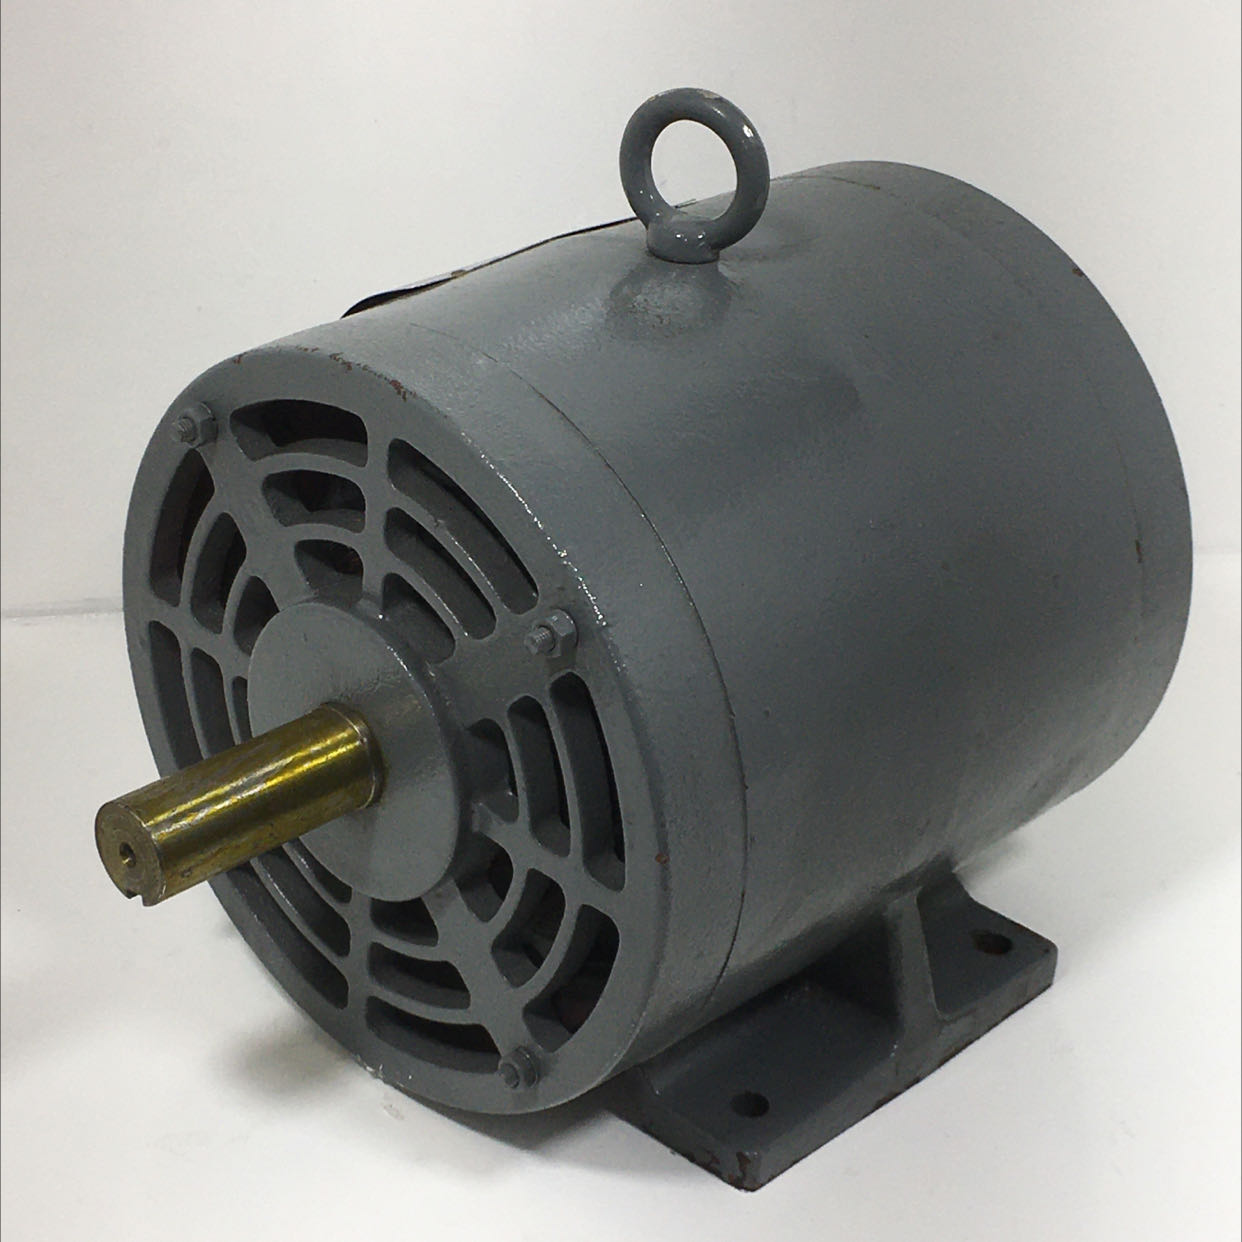 A.O Smith 0T003048V46J Electric Motor 3 HP 3 Phase 460 V